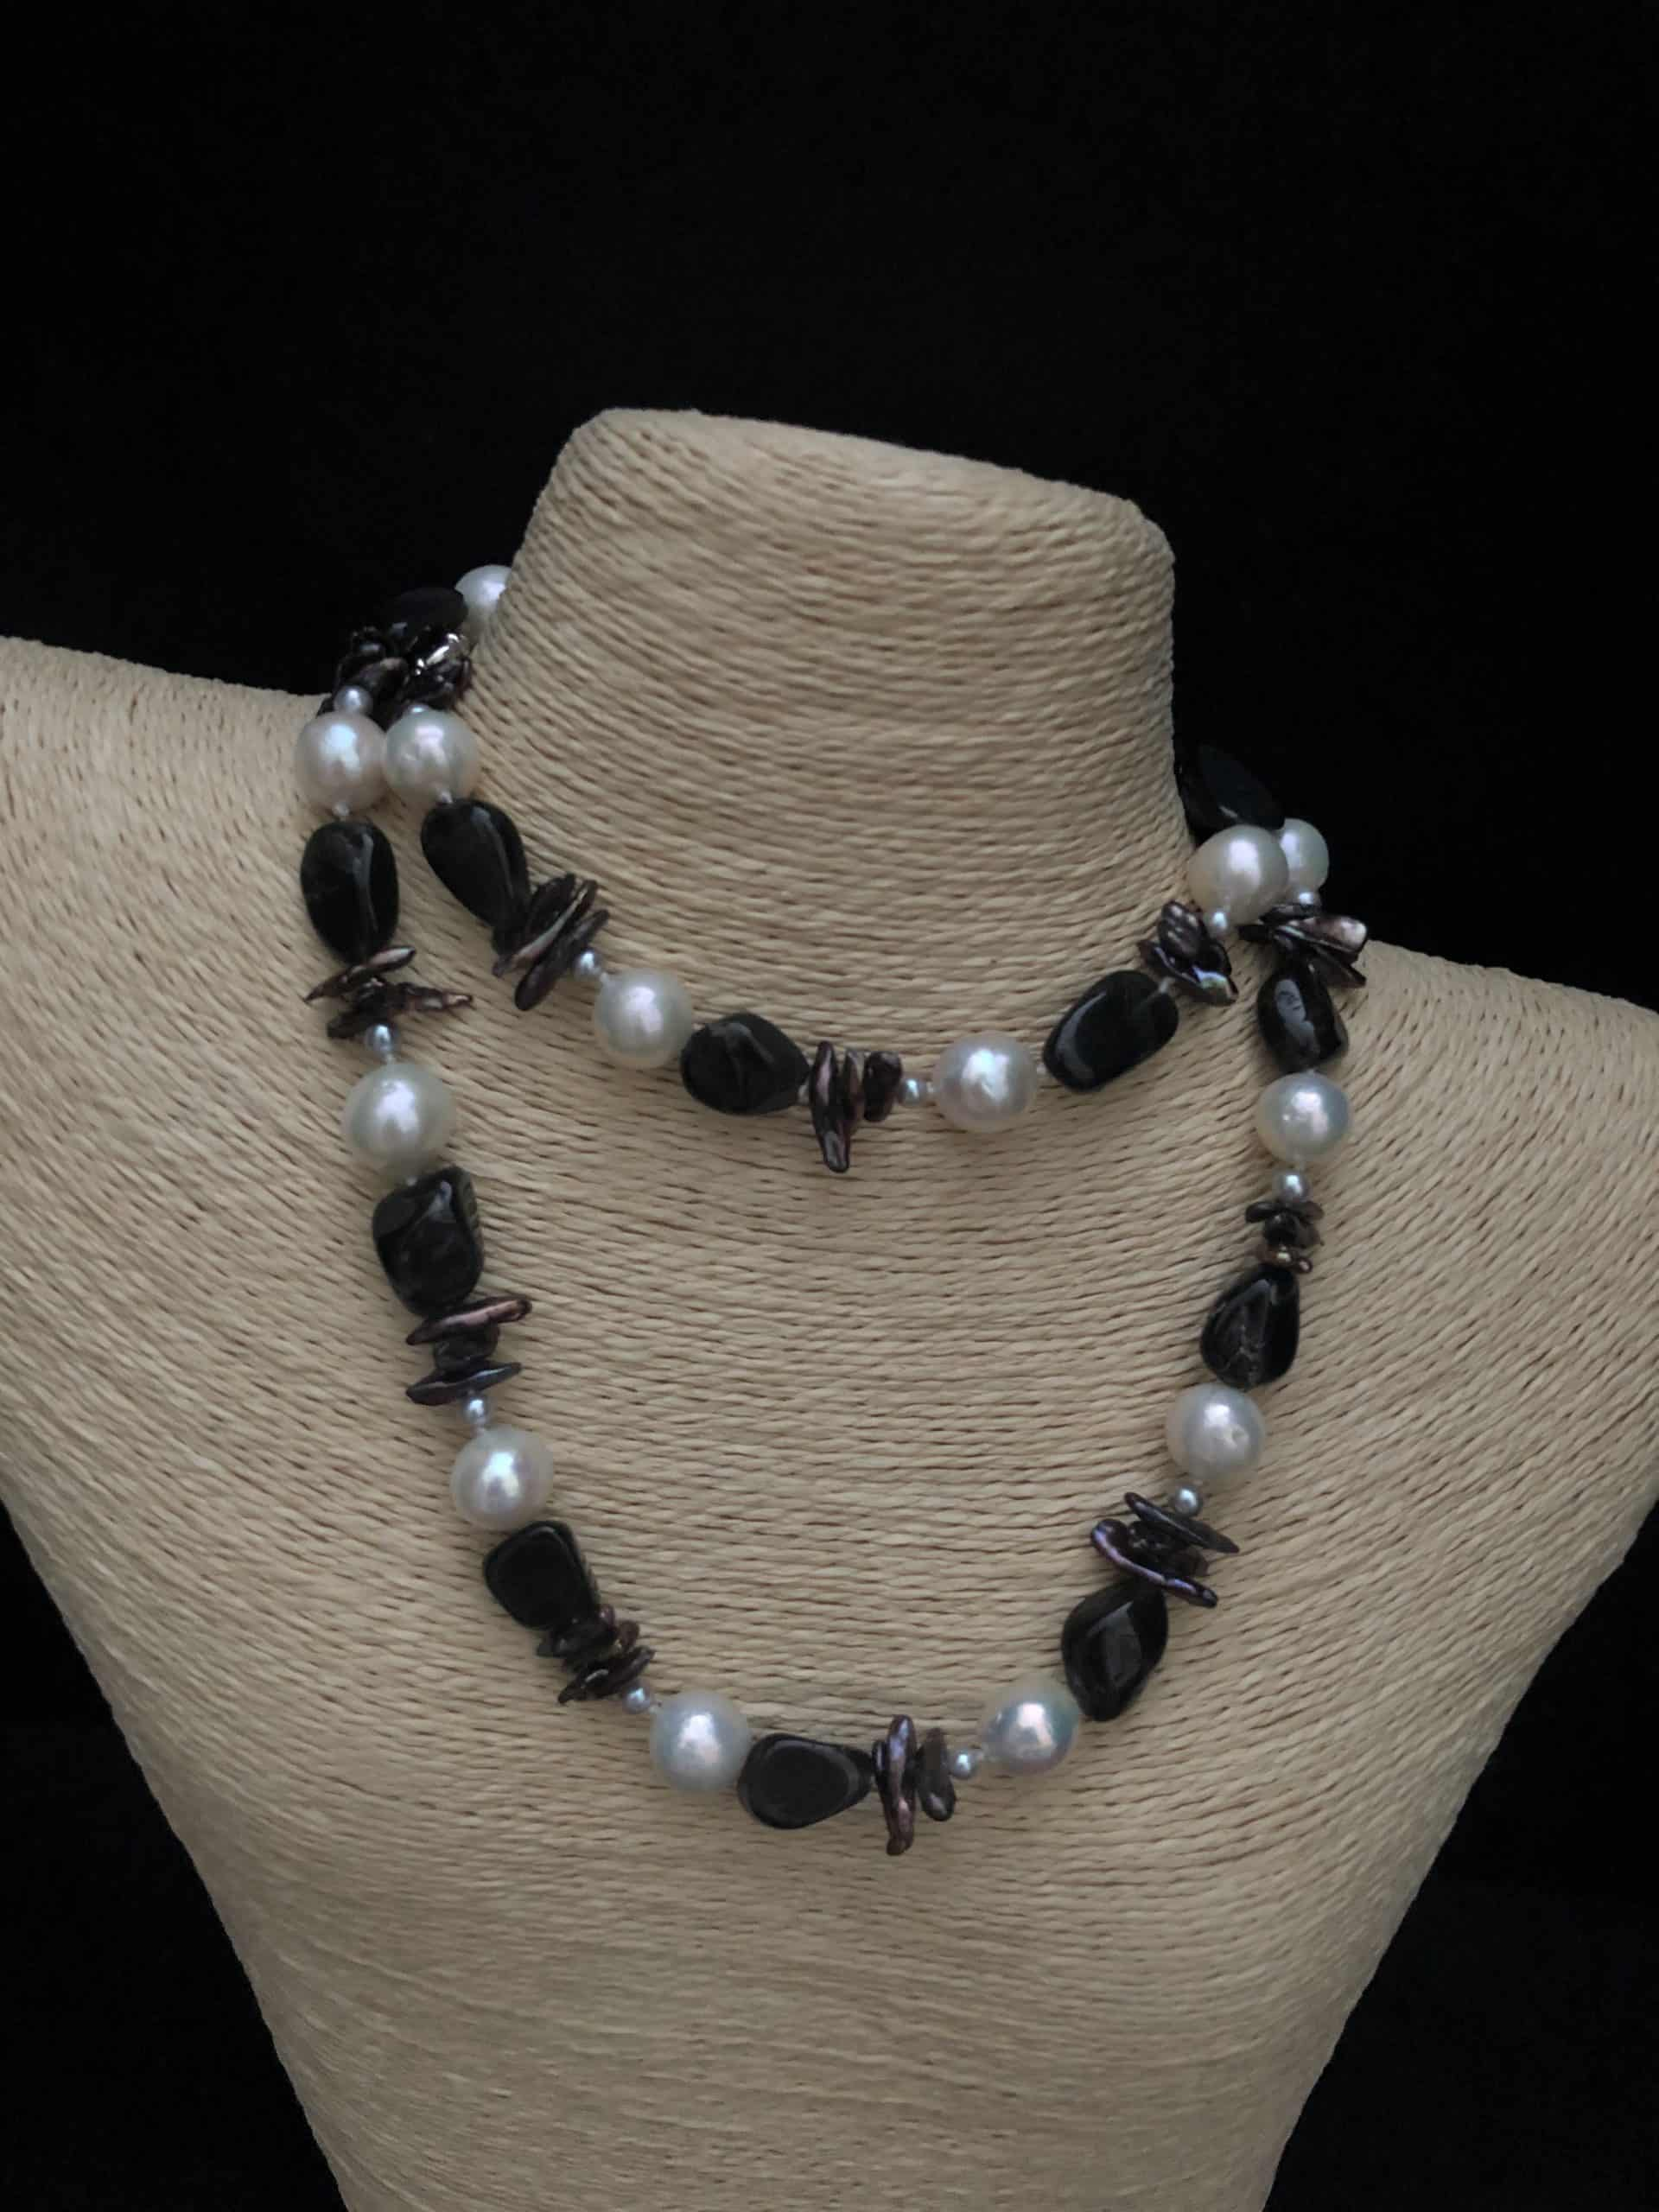 Moonstones and Pearls, by Cashmere and Pearls